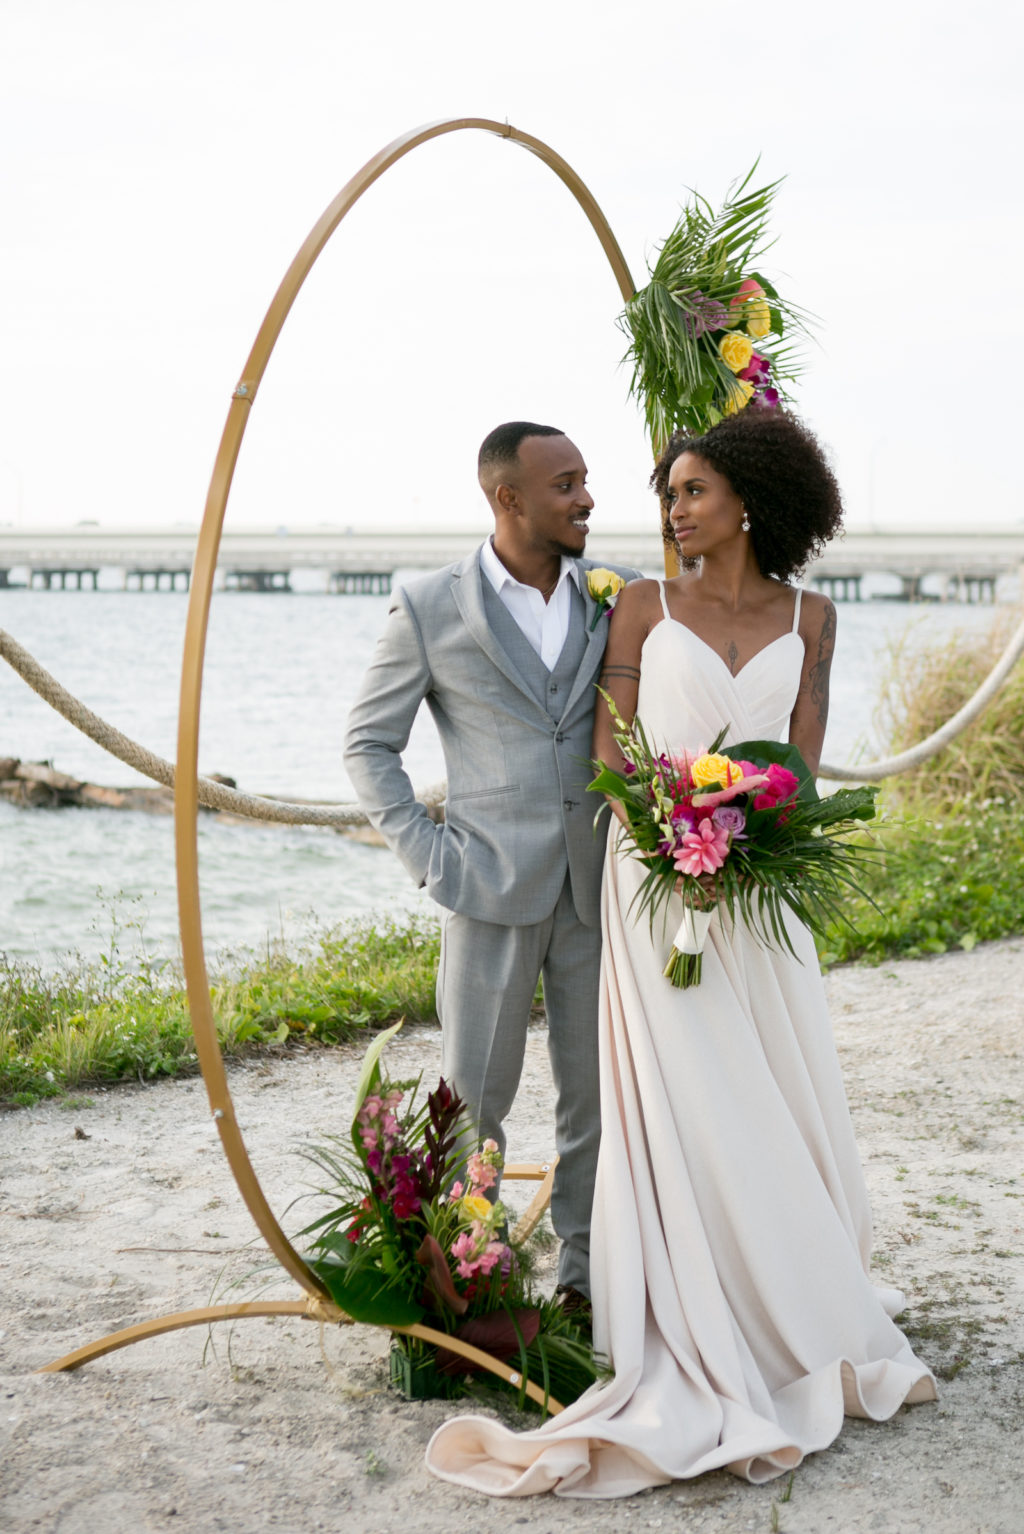 South Tampa Waterfront Intimate Wedding Ceremony on the Sand with Minimalist Gold Circle Arch, Boho Inspired Bride and Groom with Neutral Tone Attire, Bride Holding Modern Tropical Wedding Bouquet with Vibrant Yellow Roses, Bright Pink Flowers, Purple Hibiscus, Monstera, and Palm Leaves | Tampa Bay Wedding Photographer Carrie Wildes Photography | South Tampa Wedding Planners Socialite Events | Salt Shack On the Bay Wedding